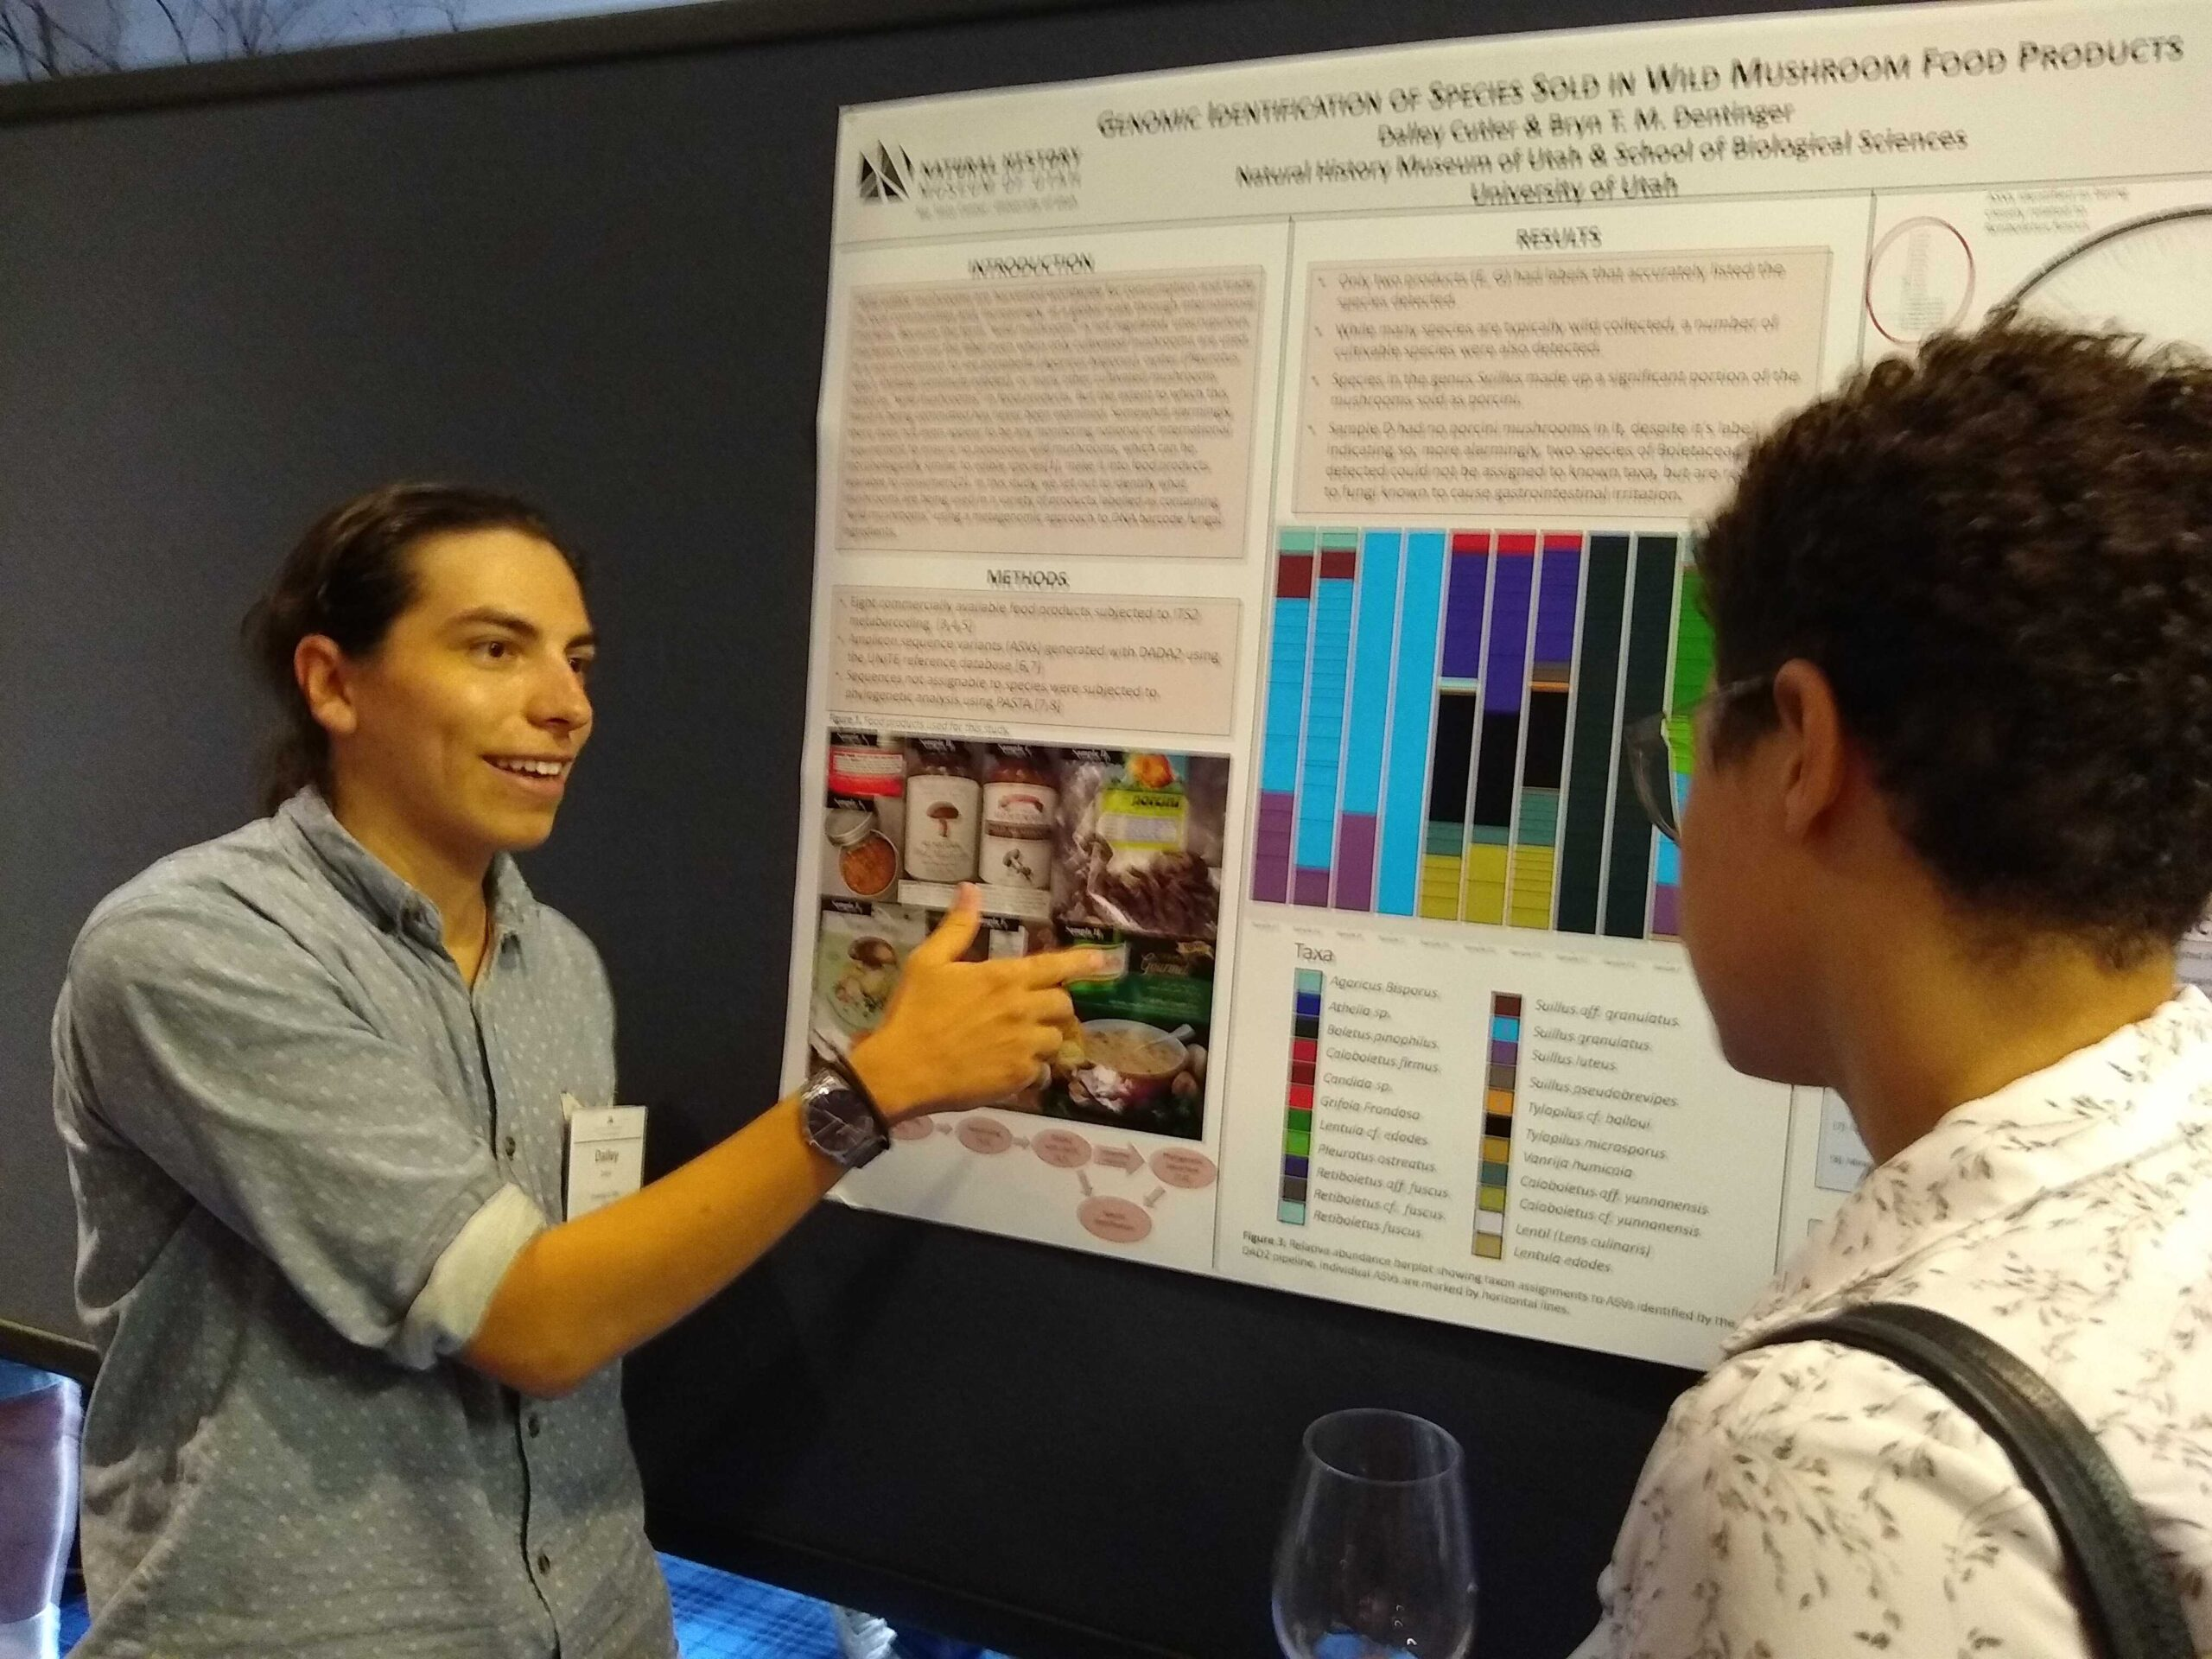 Dalley Cutler presents in front of an academic poster that displays the data included in this study.